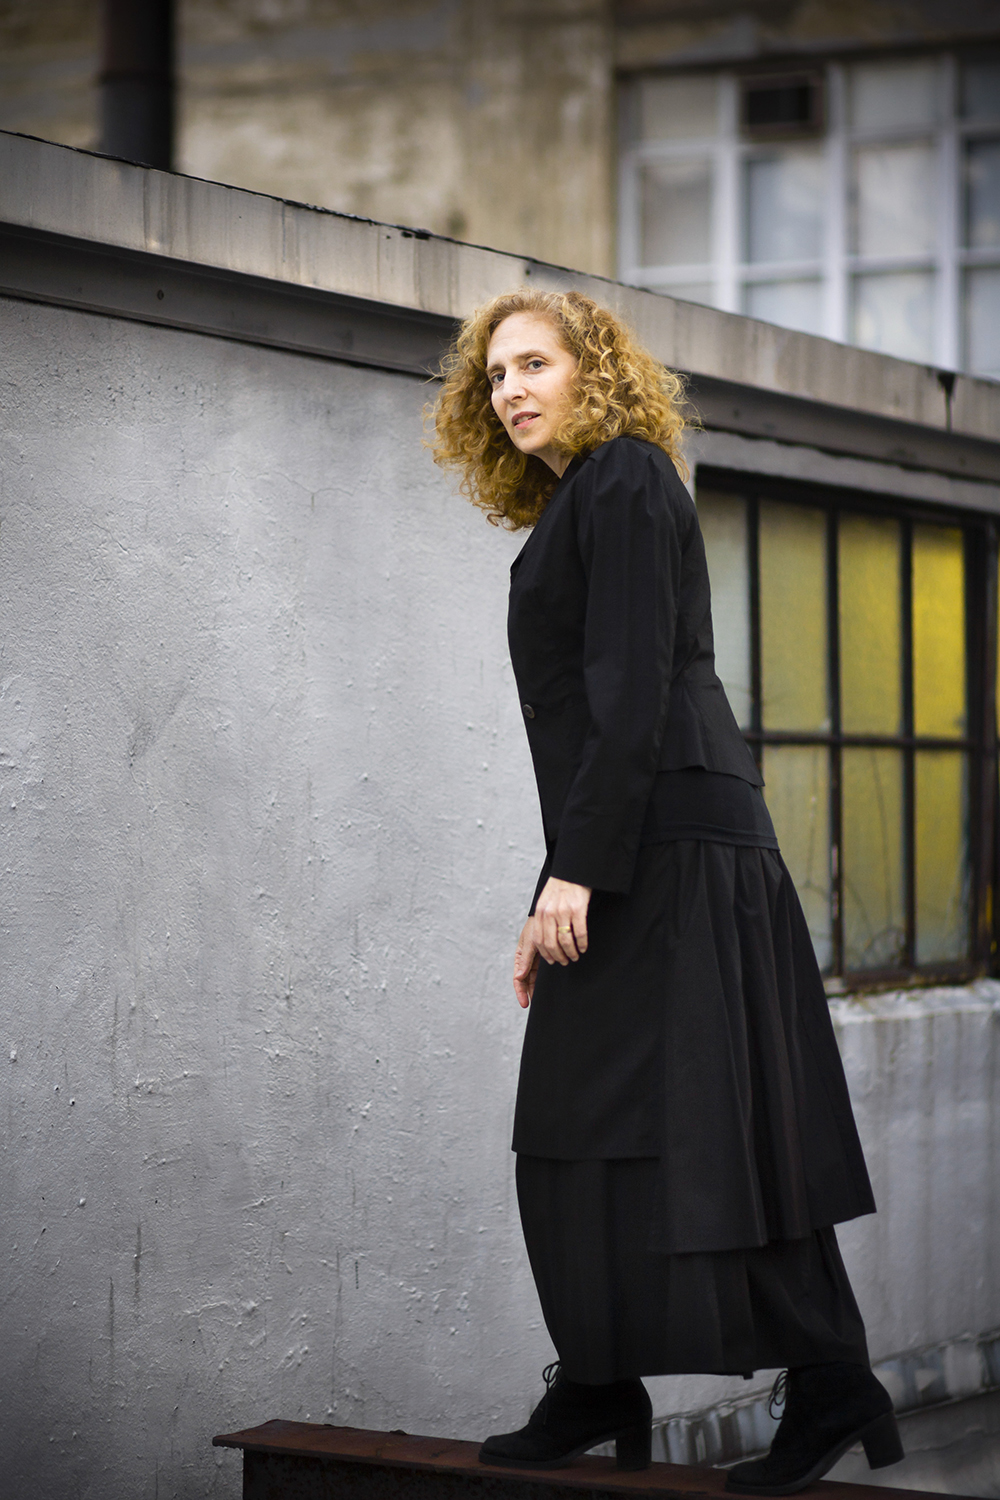 2019 Muscial America Composer of the Year - Julia Wolfe